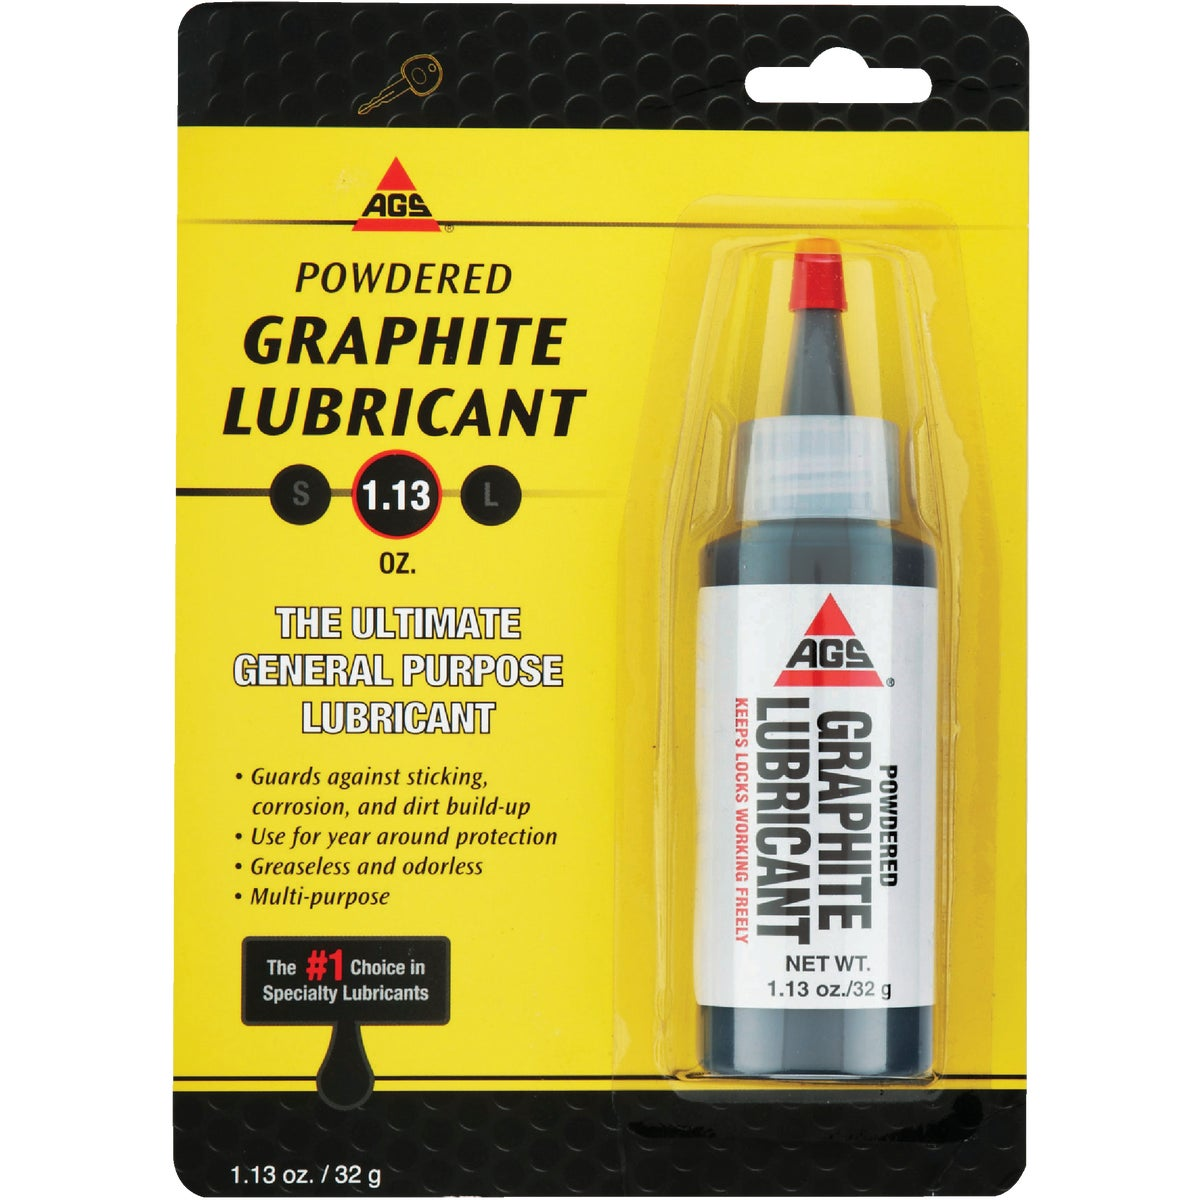 1.13OZ POWDER GRAPHITE - MZ-5 by A G S Company